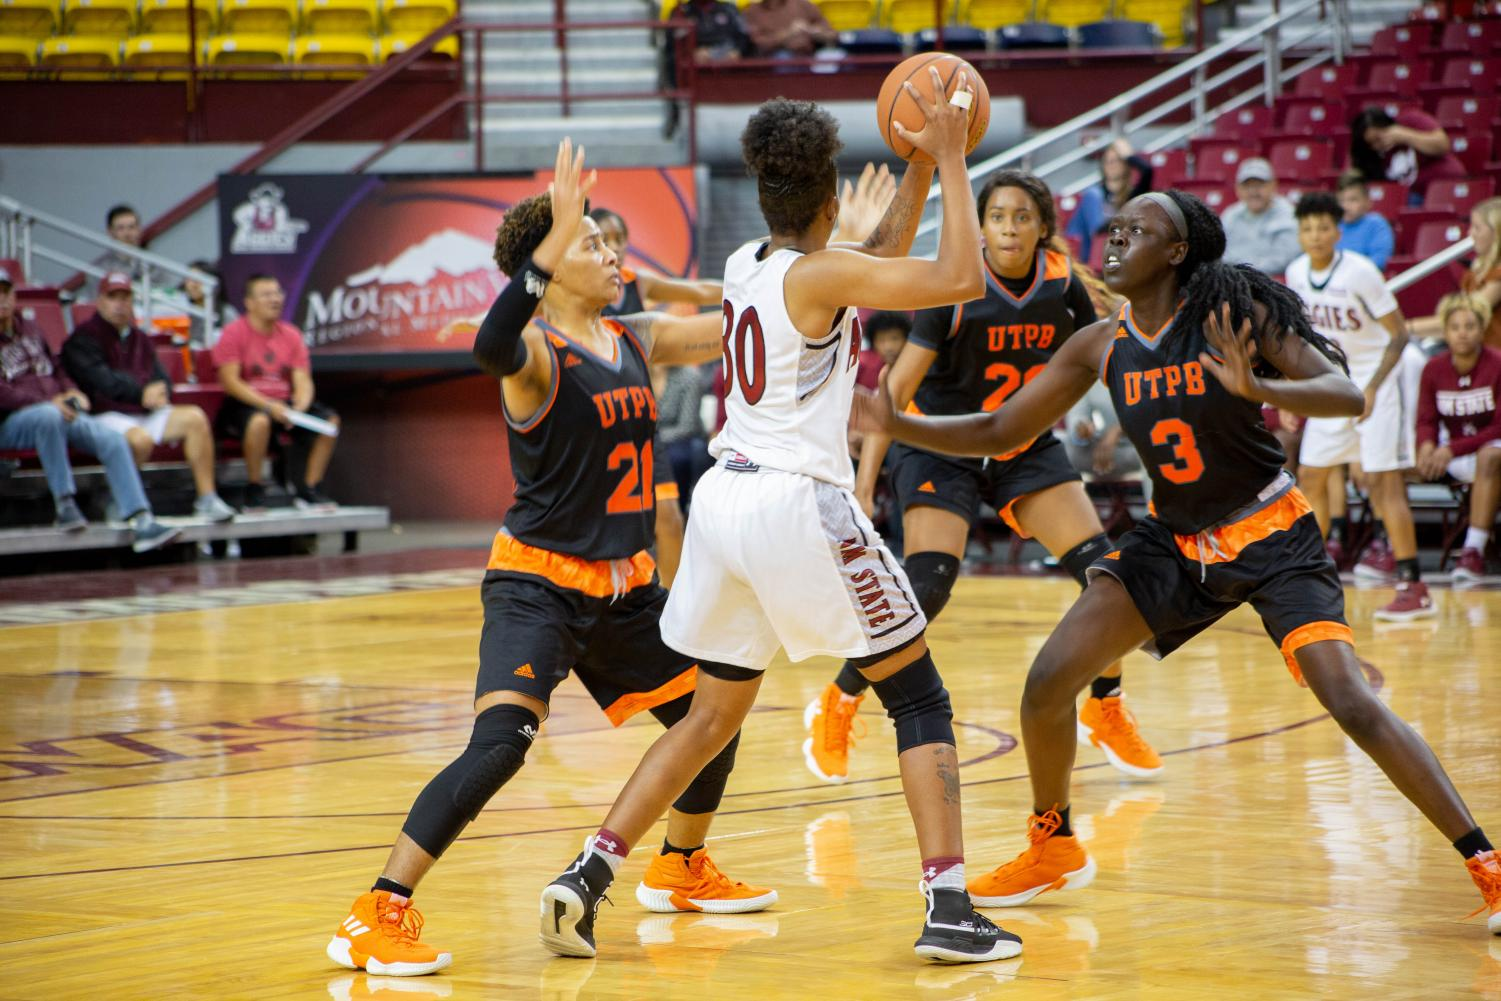 Gia Pack and the Aggies start off head coach Brooke Atkinson's second season in charge with a resounding win over UTPB.